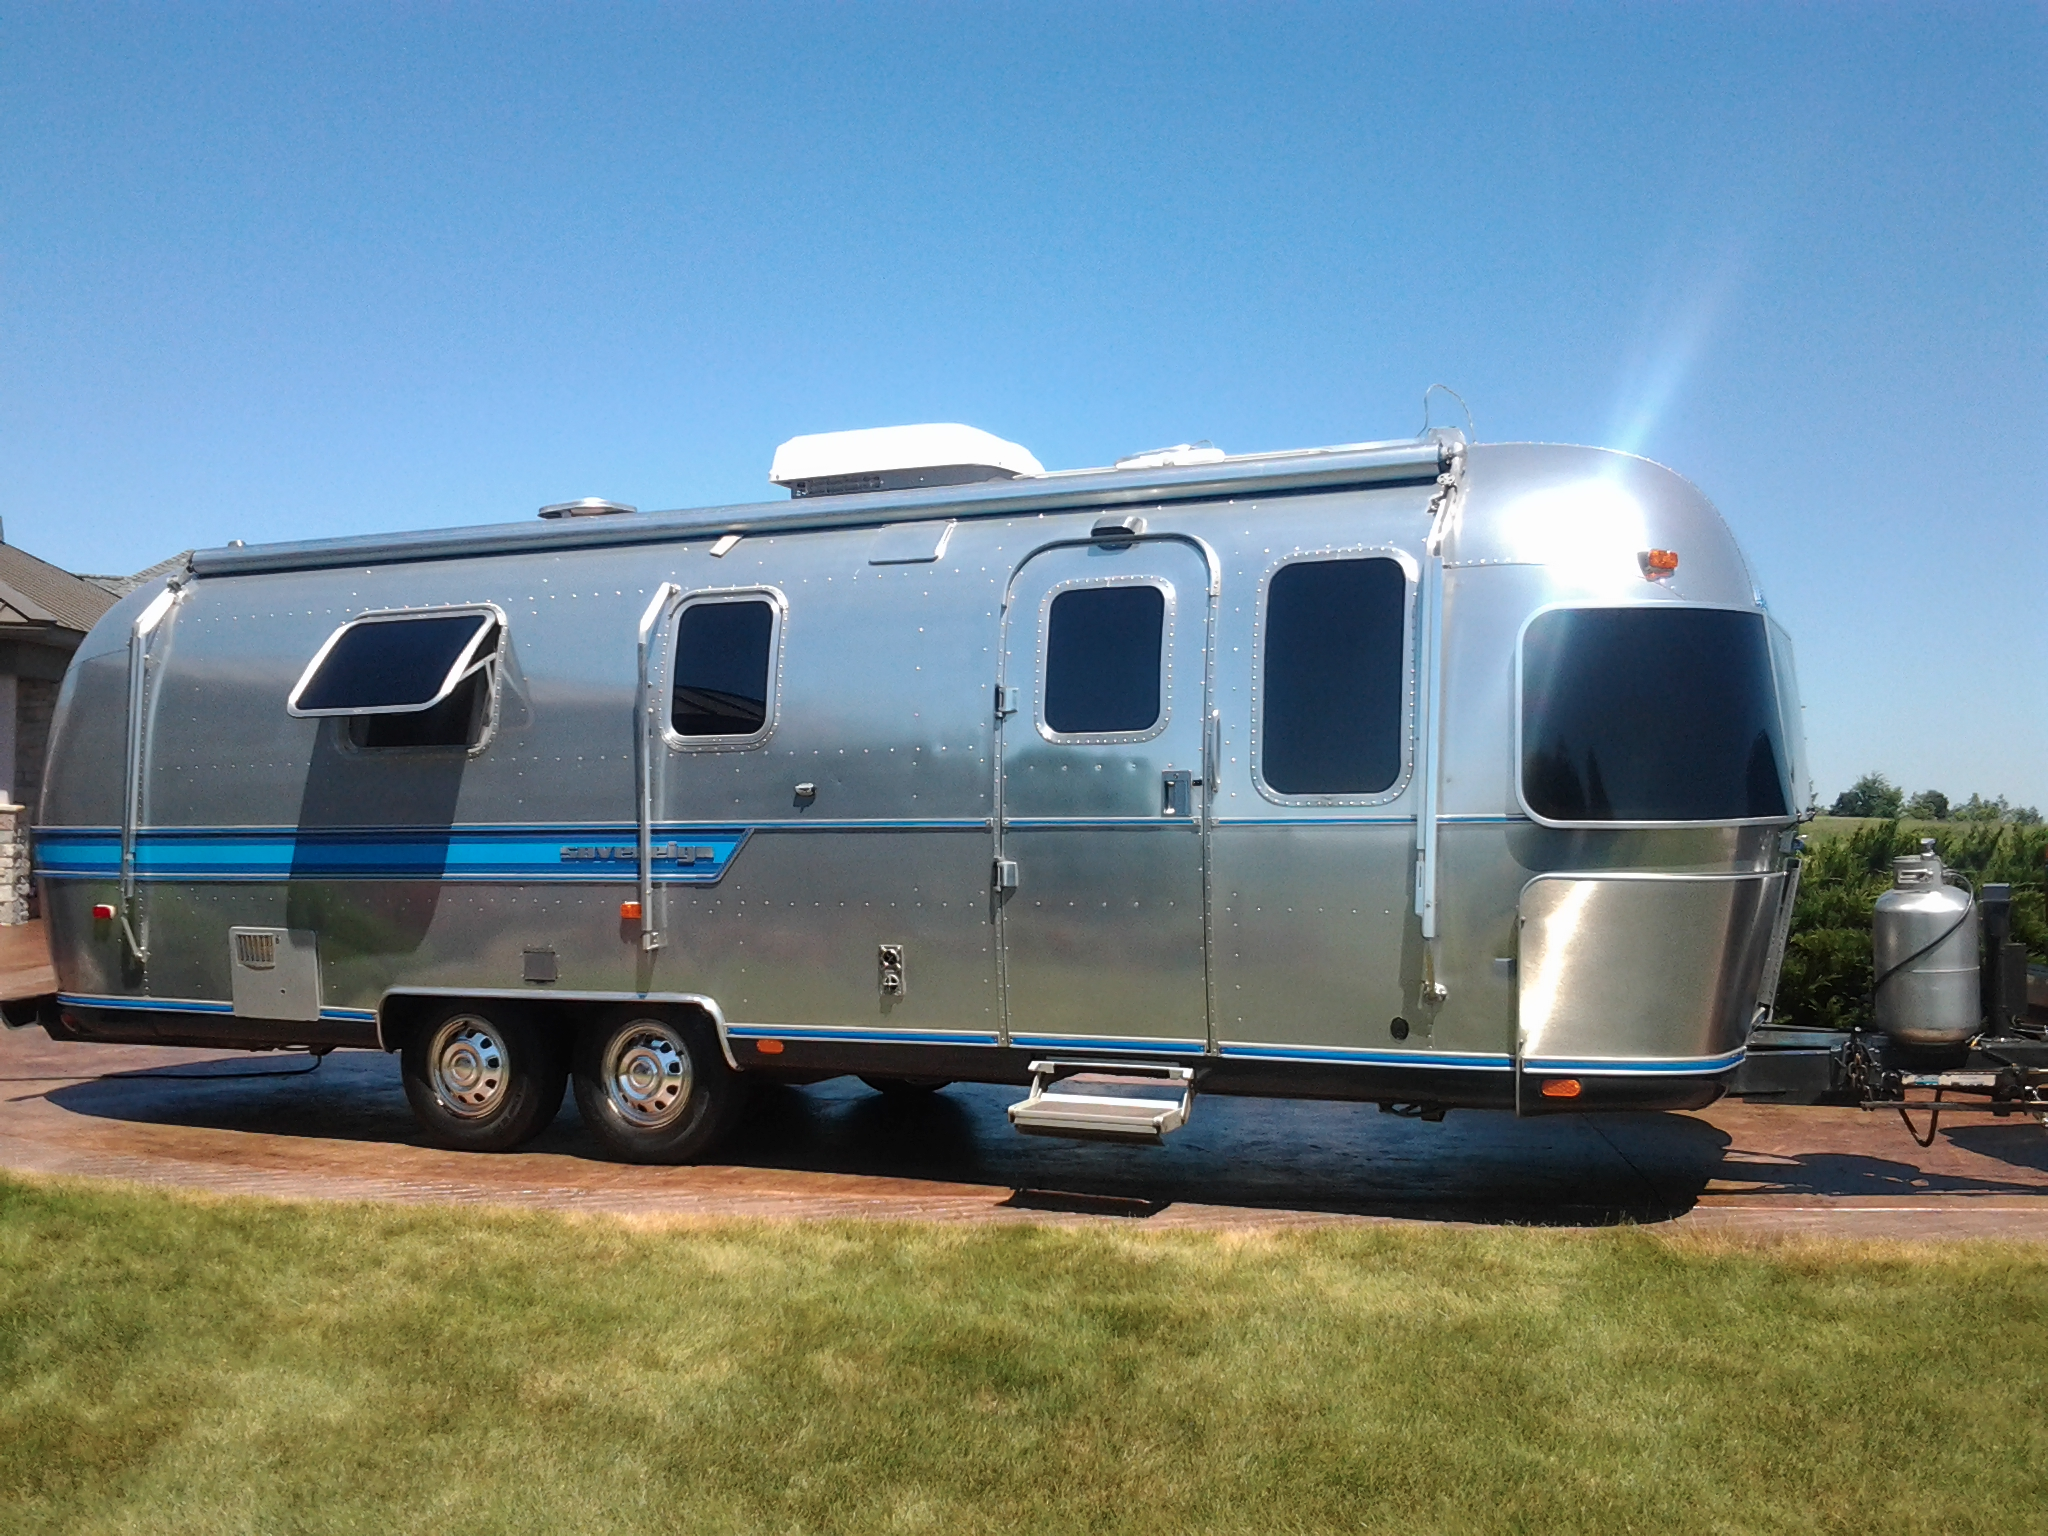 mobile home factory with File 1987 Airstream on Warehouse Heating 101 besides OrganizationStructure further File 1987 Airstream as well Airbus Opens Final Assembly Line Mobile Alabama also 1 Bedrooms In Thaltej Ahmedabad Gujarat 249781.